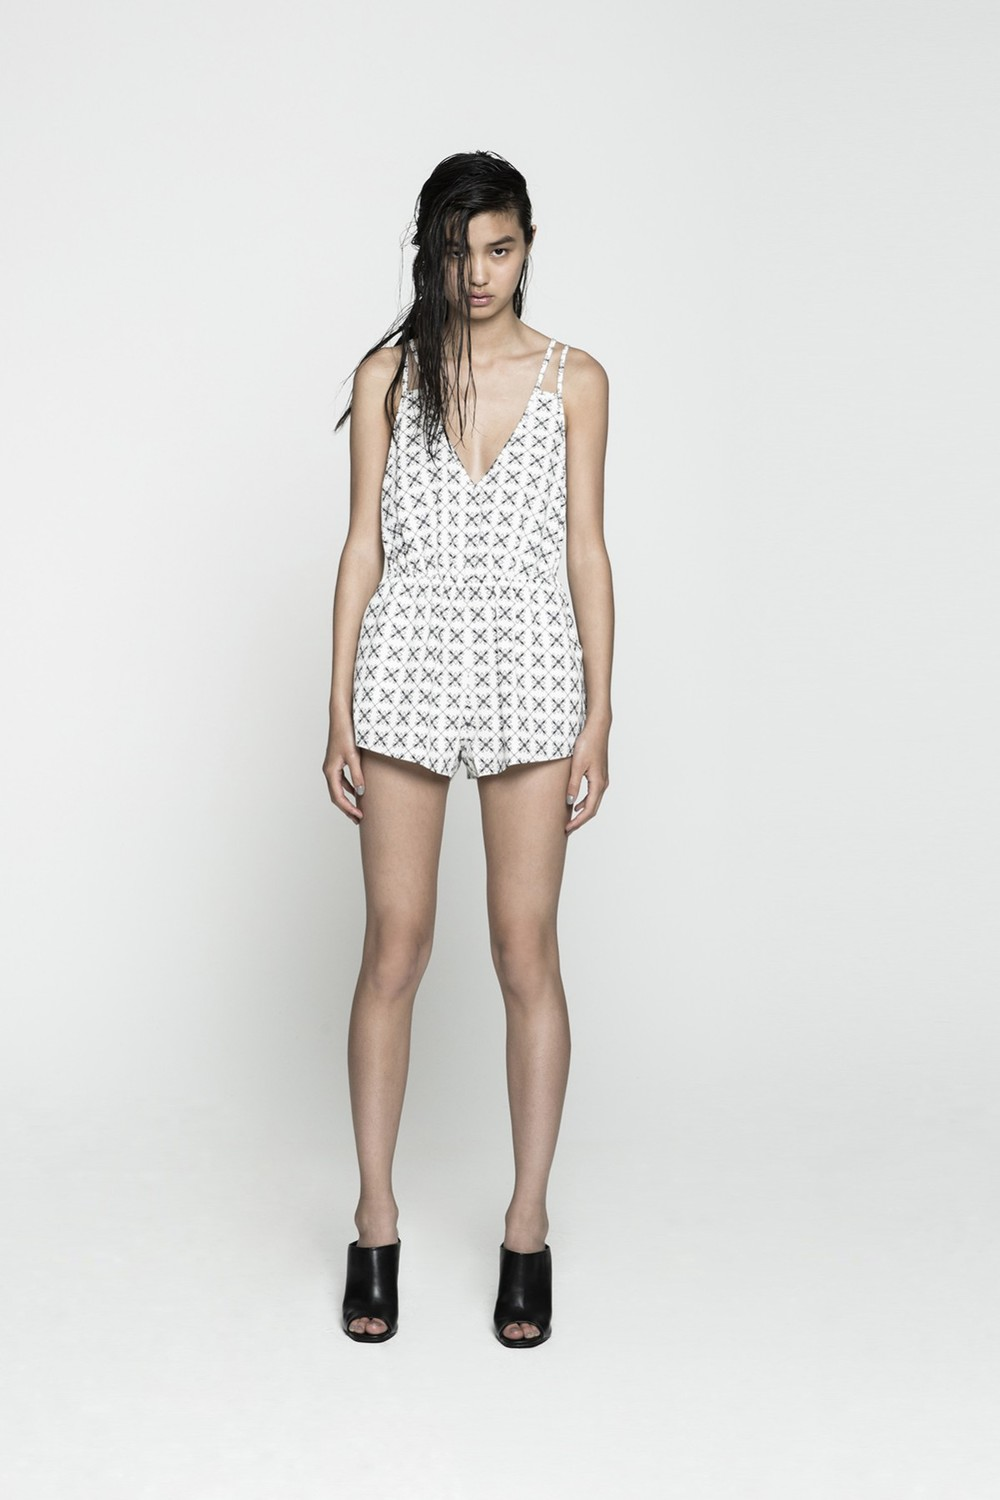 All your waiting for playsuit by The Fifth- $84.95